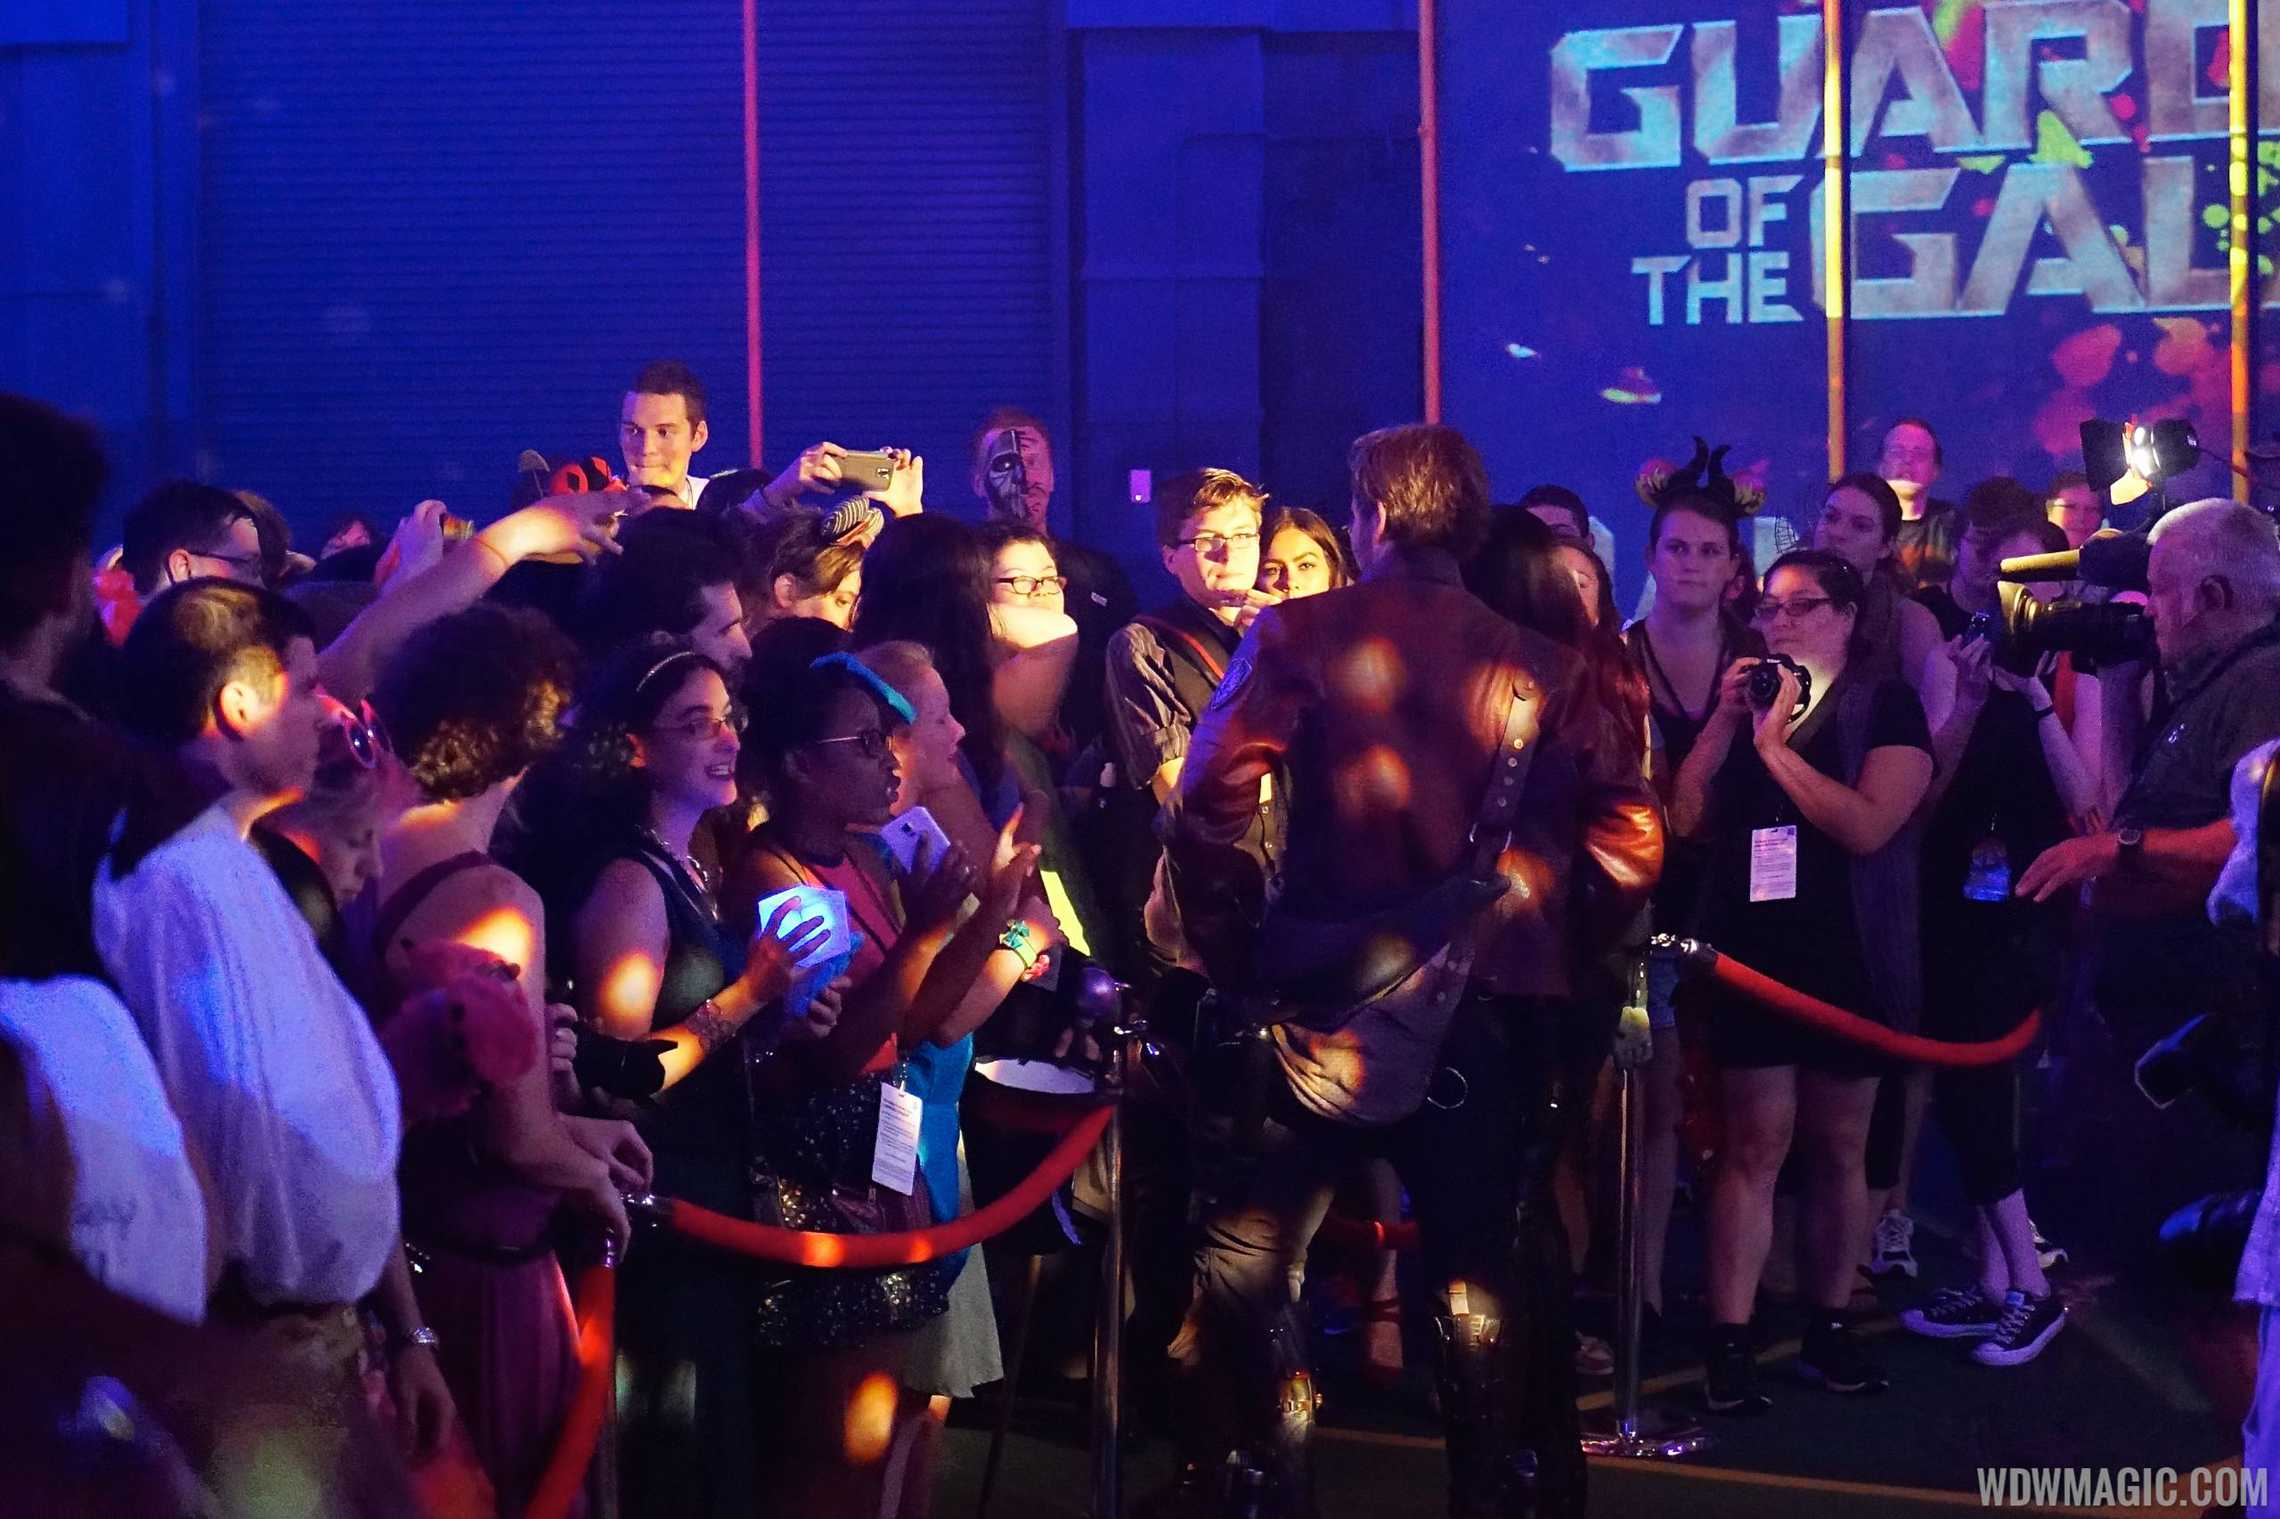 Gamora and Star Lord meet guests